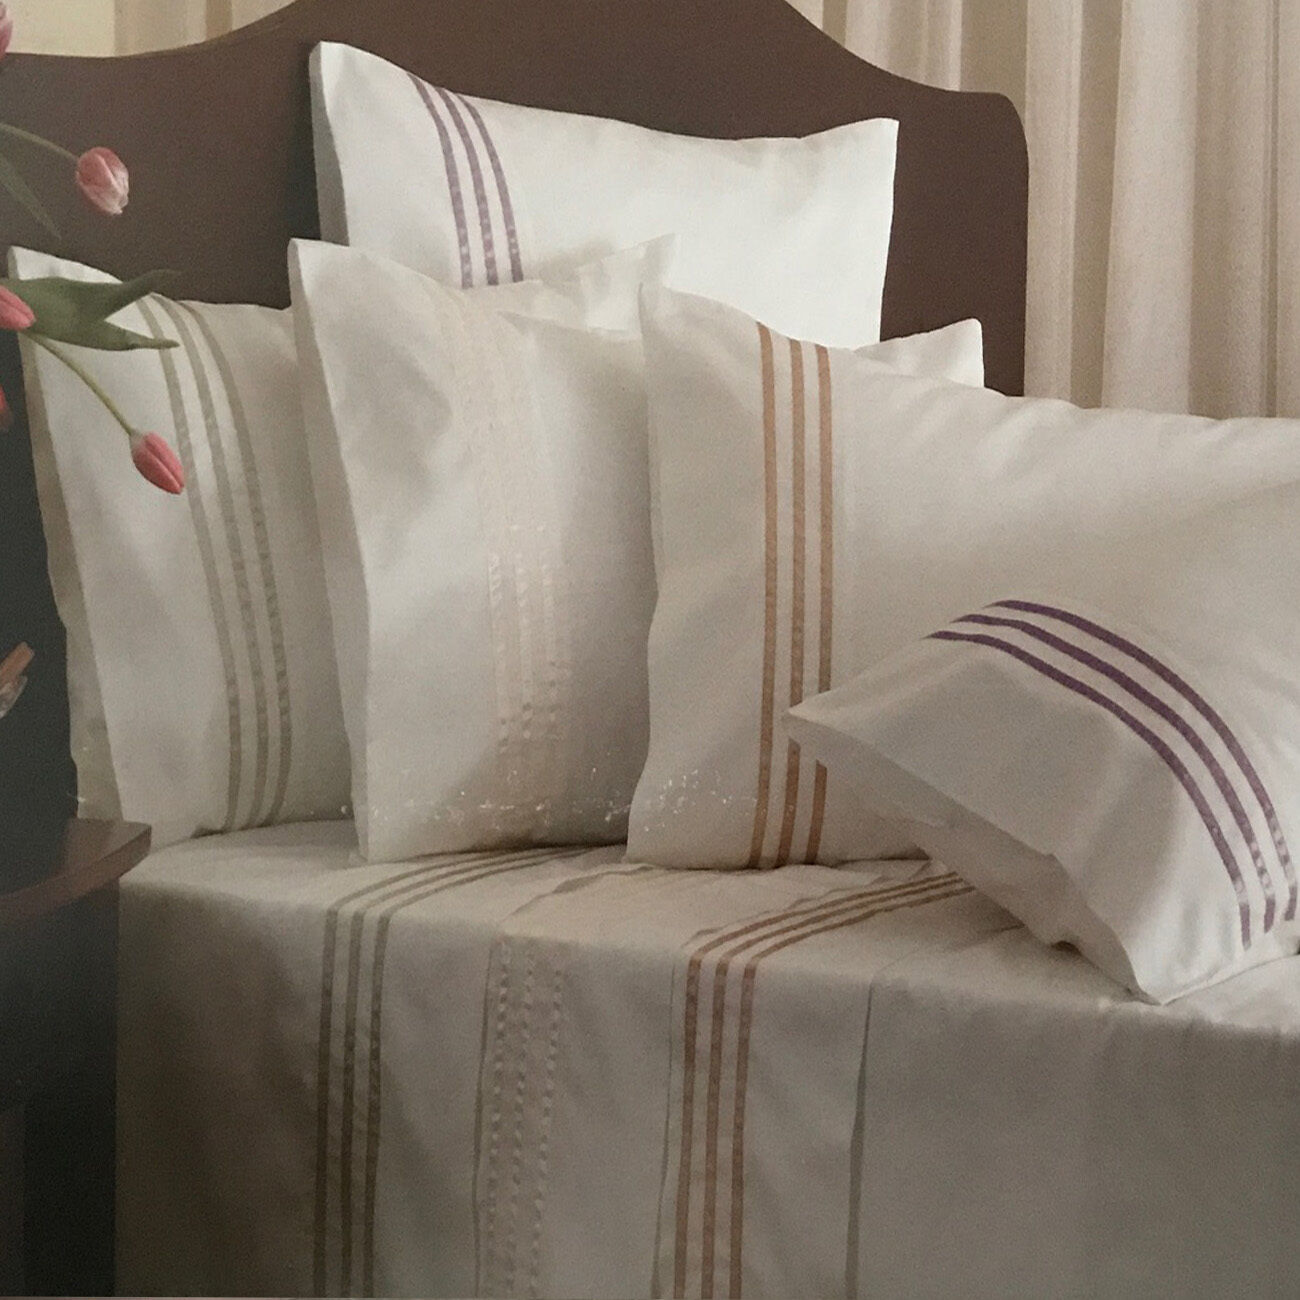 Private Collection Finesse Ribbons Celdon Sheet Set   Cotton Rich Sateen   Queen